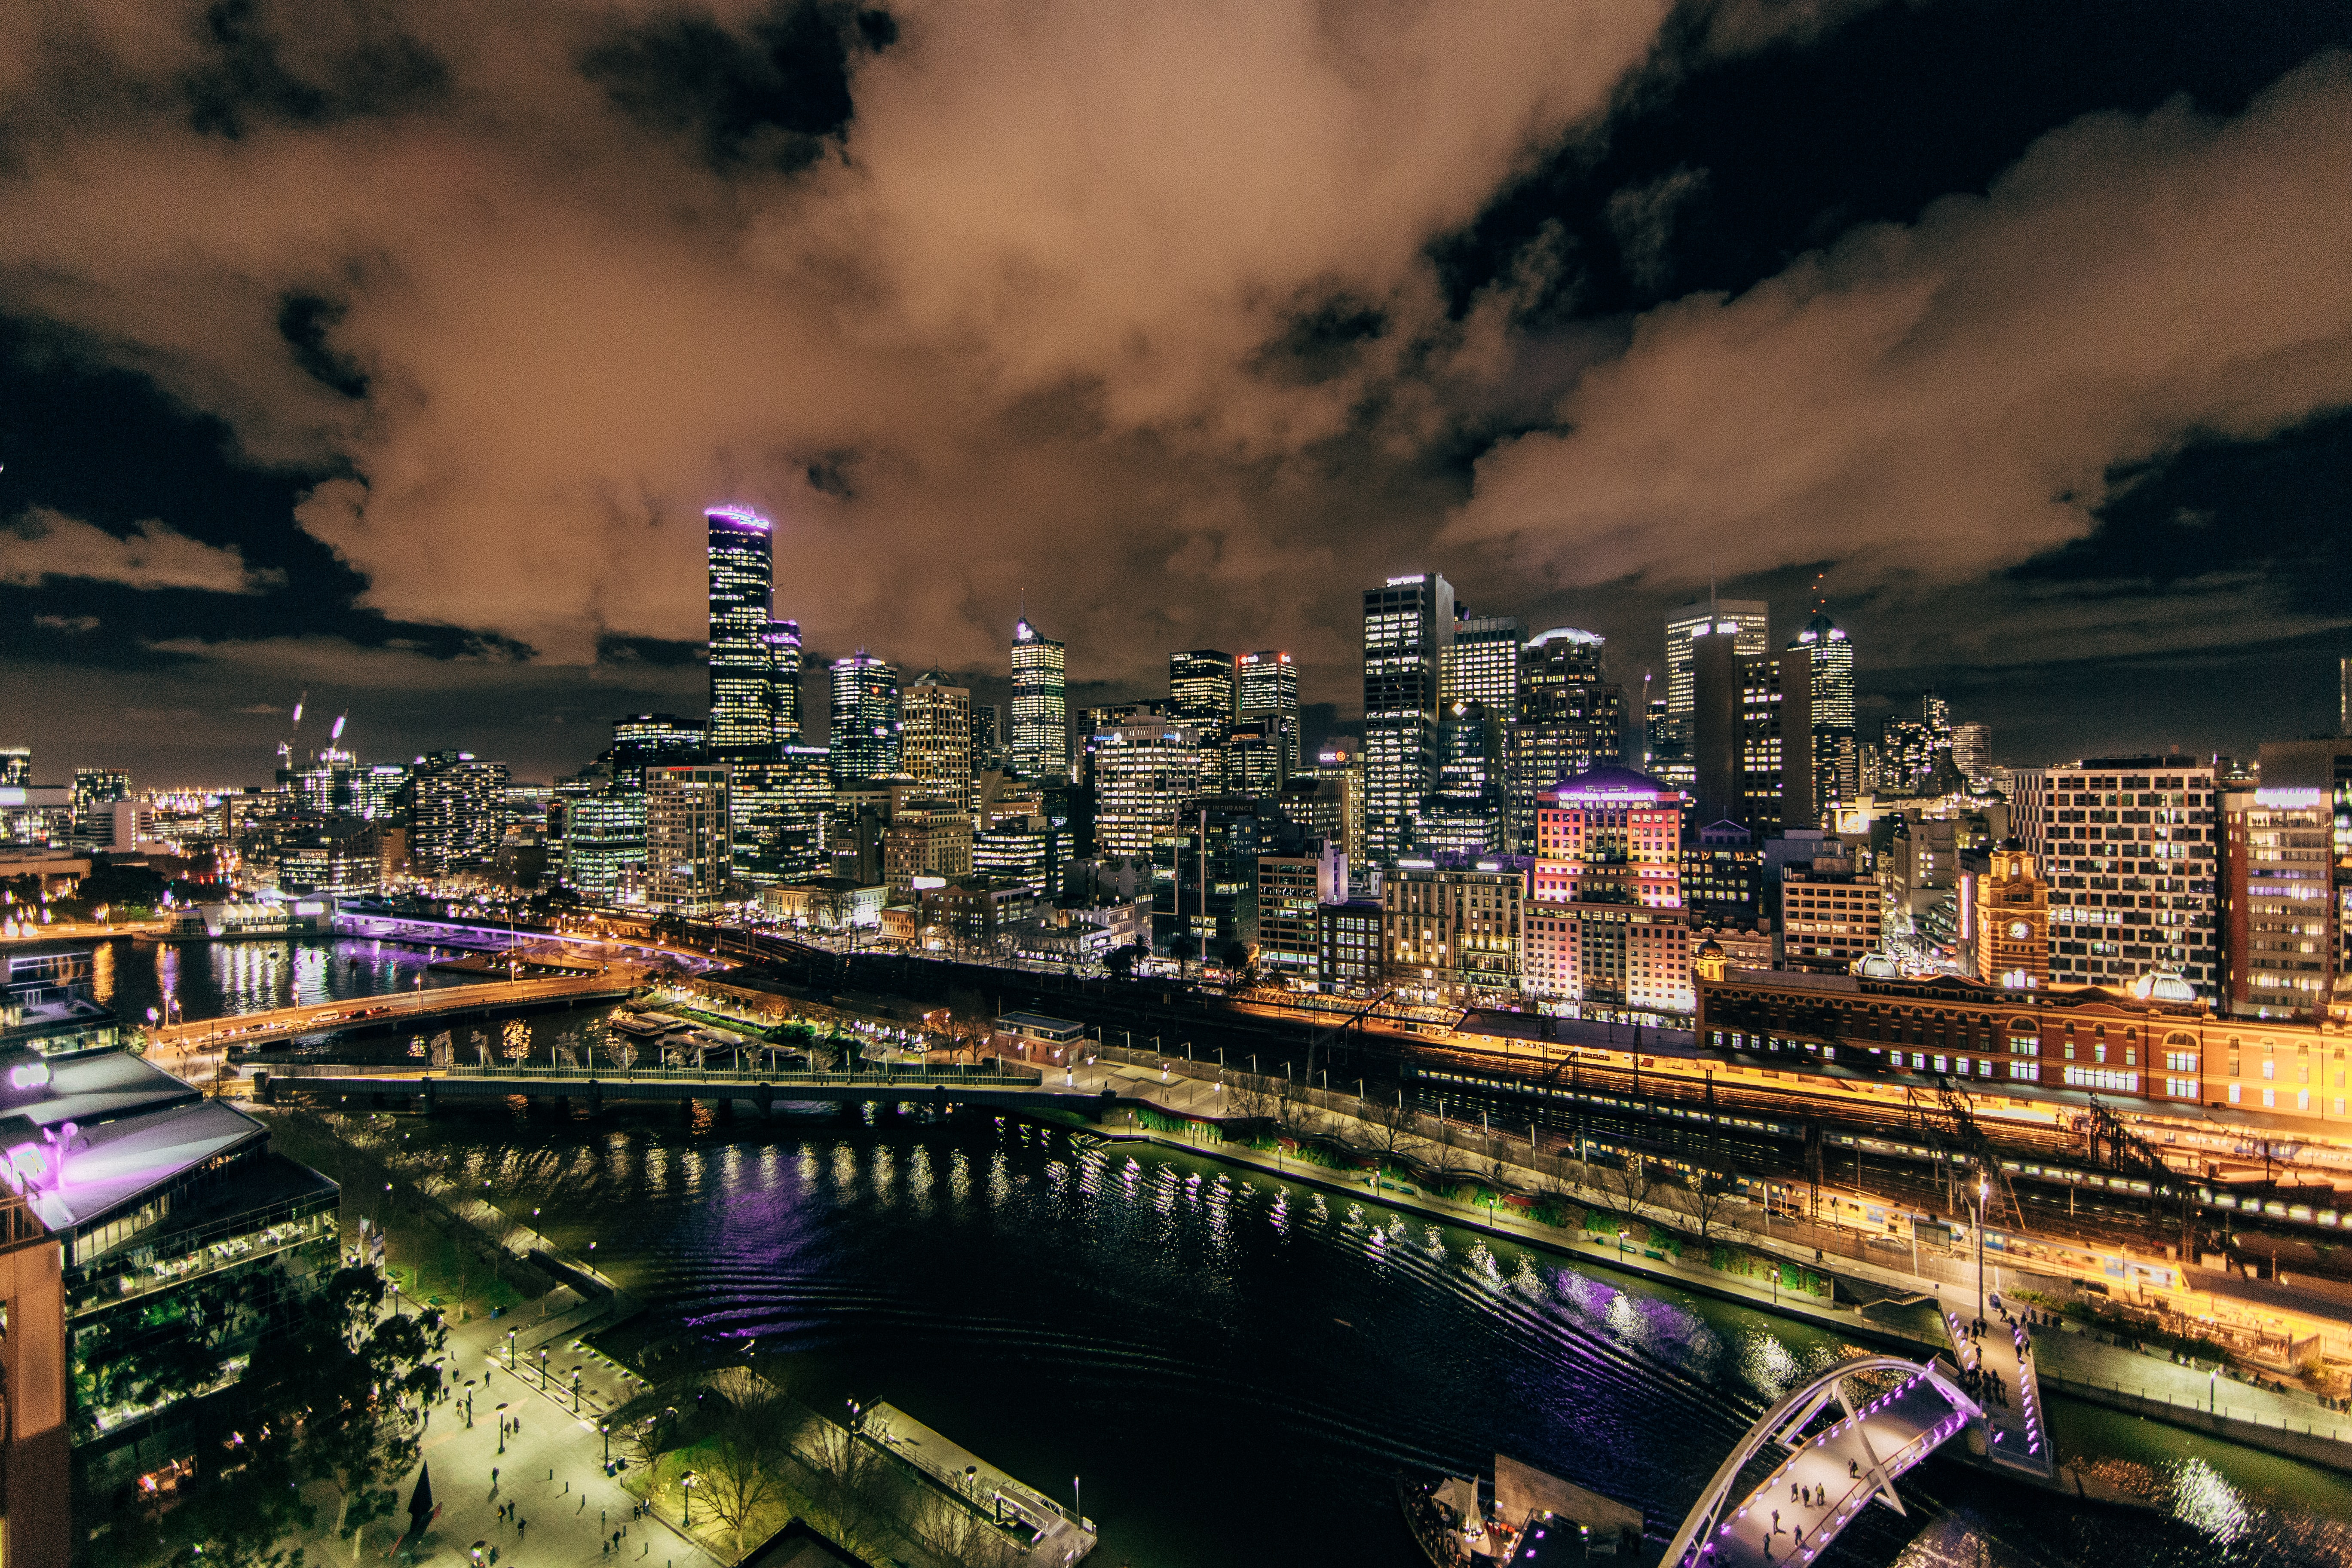 An urban panorama on the banks of a river in Melbourne at night